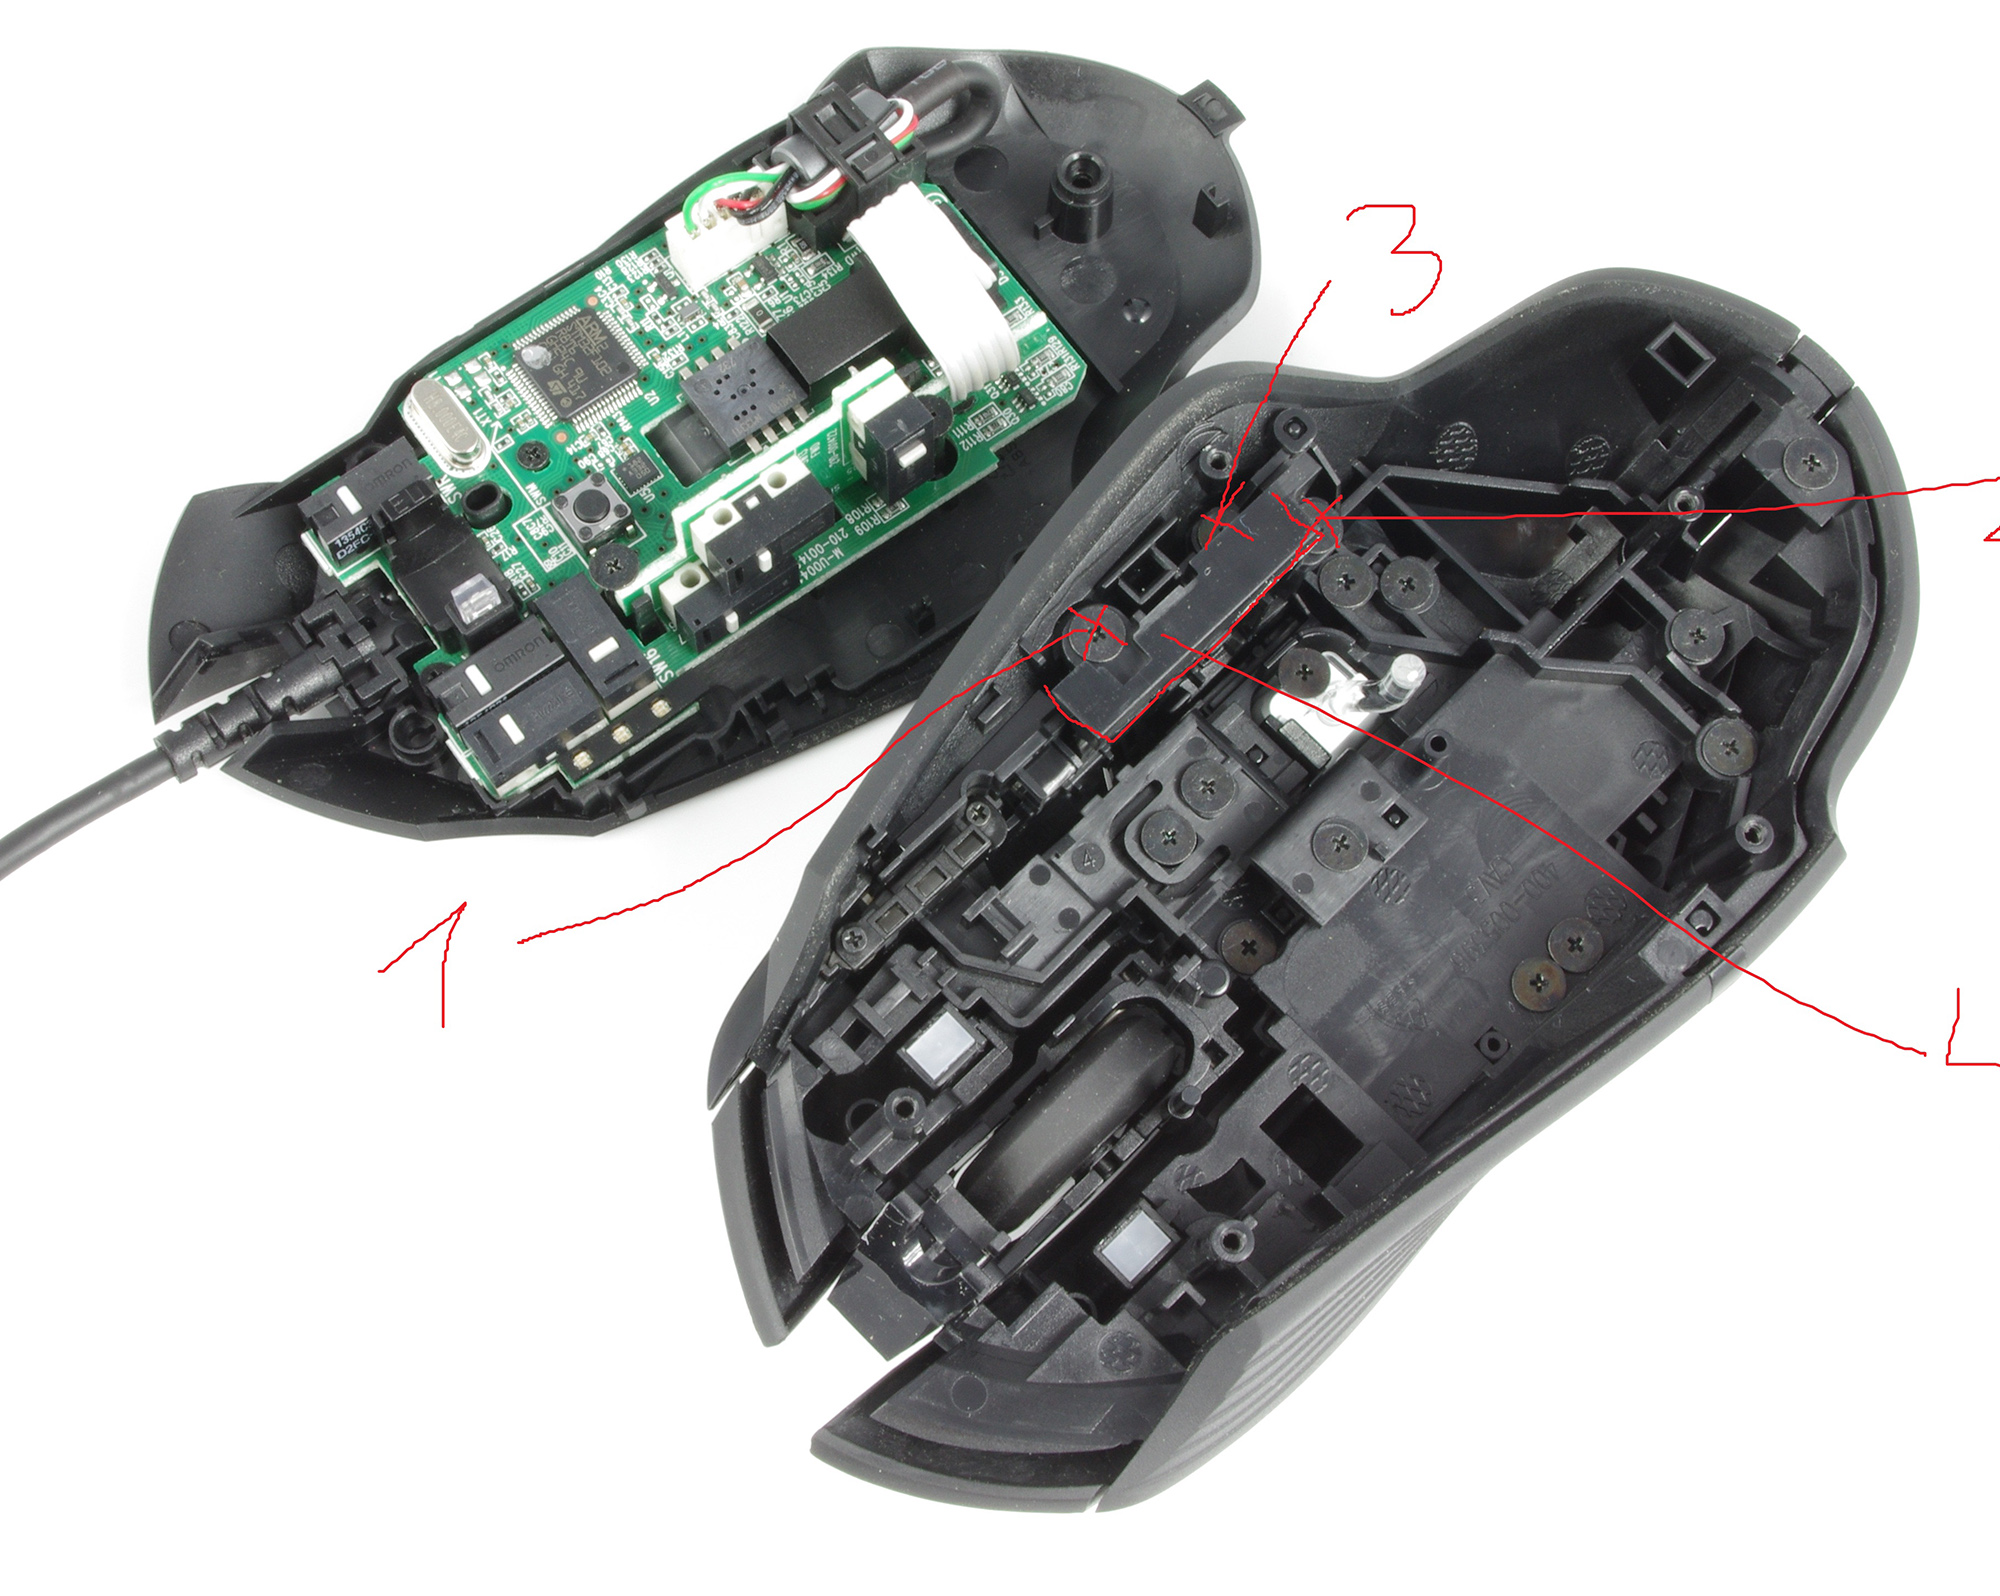 Information and resources for fixing Logitech G402 buttons